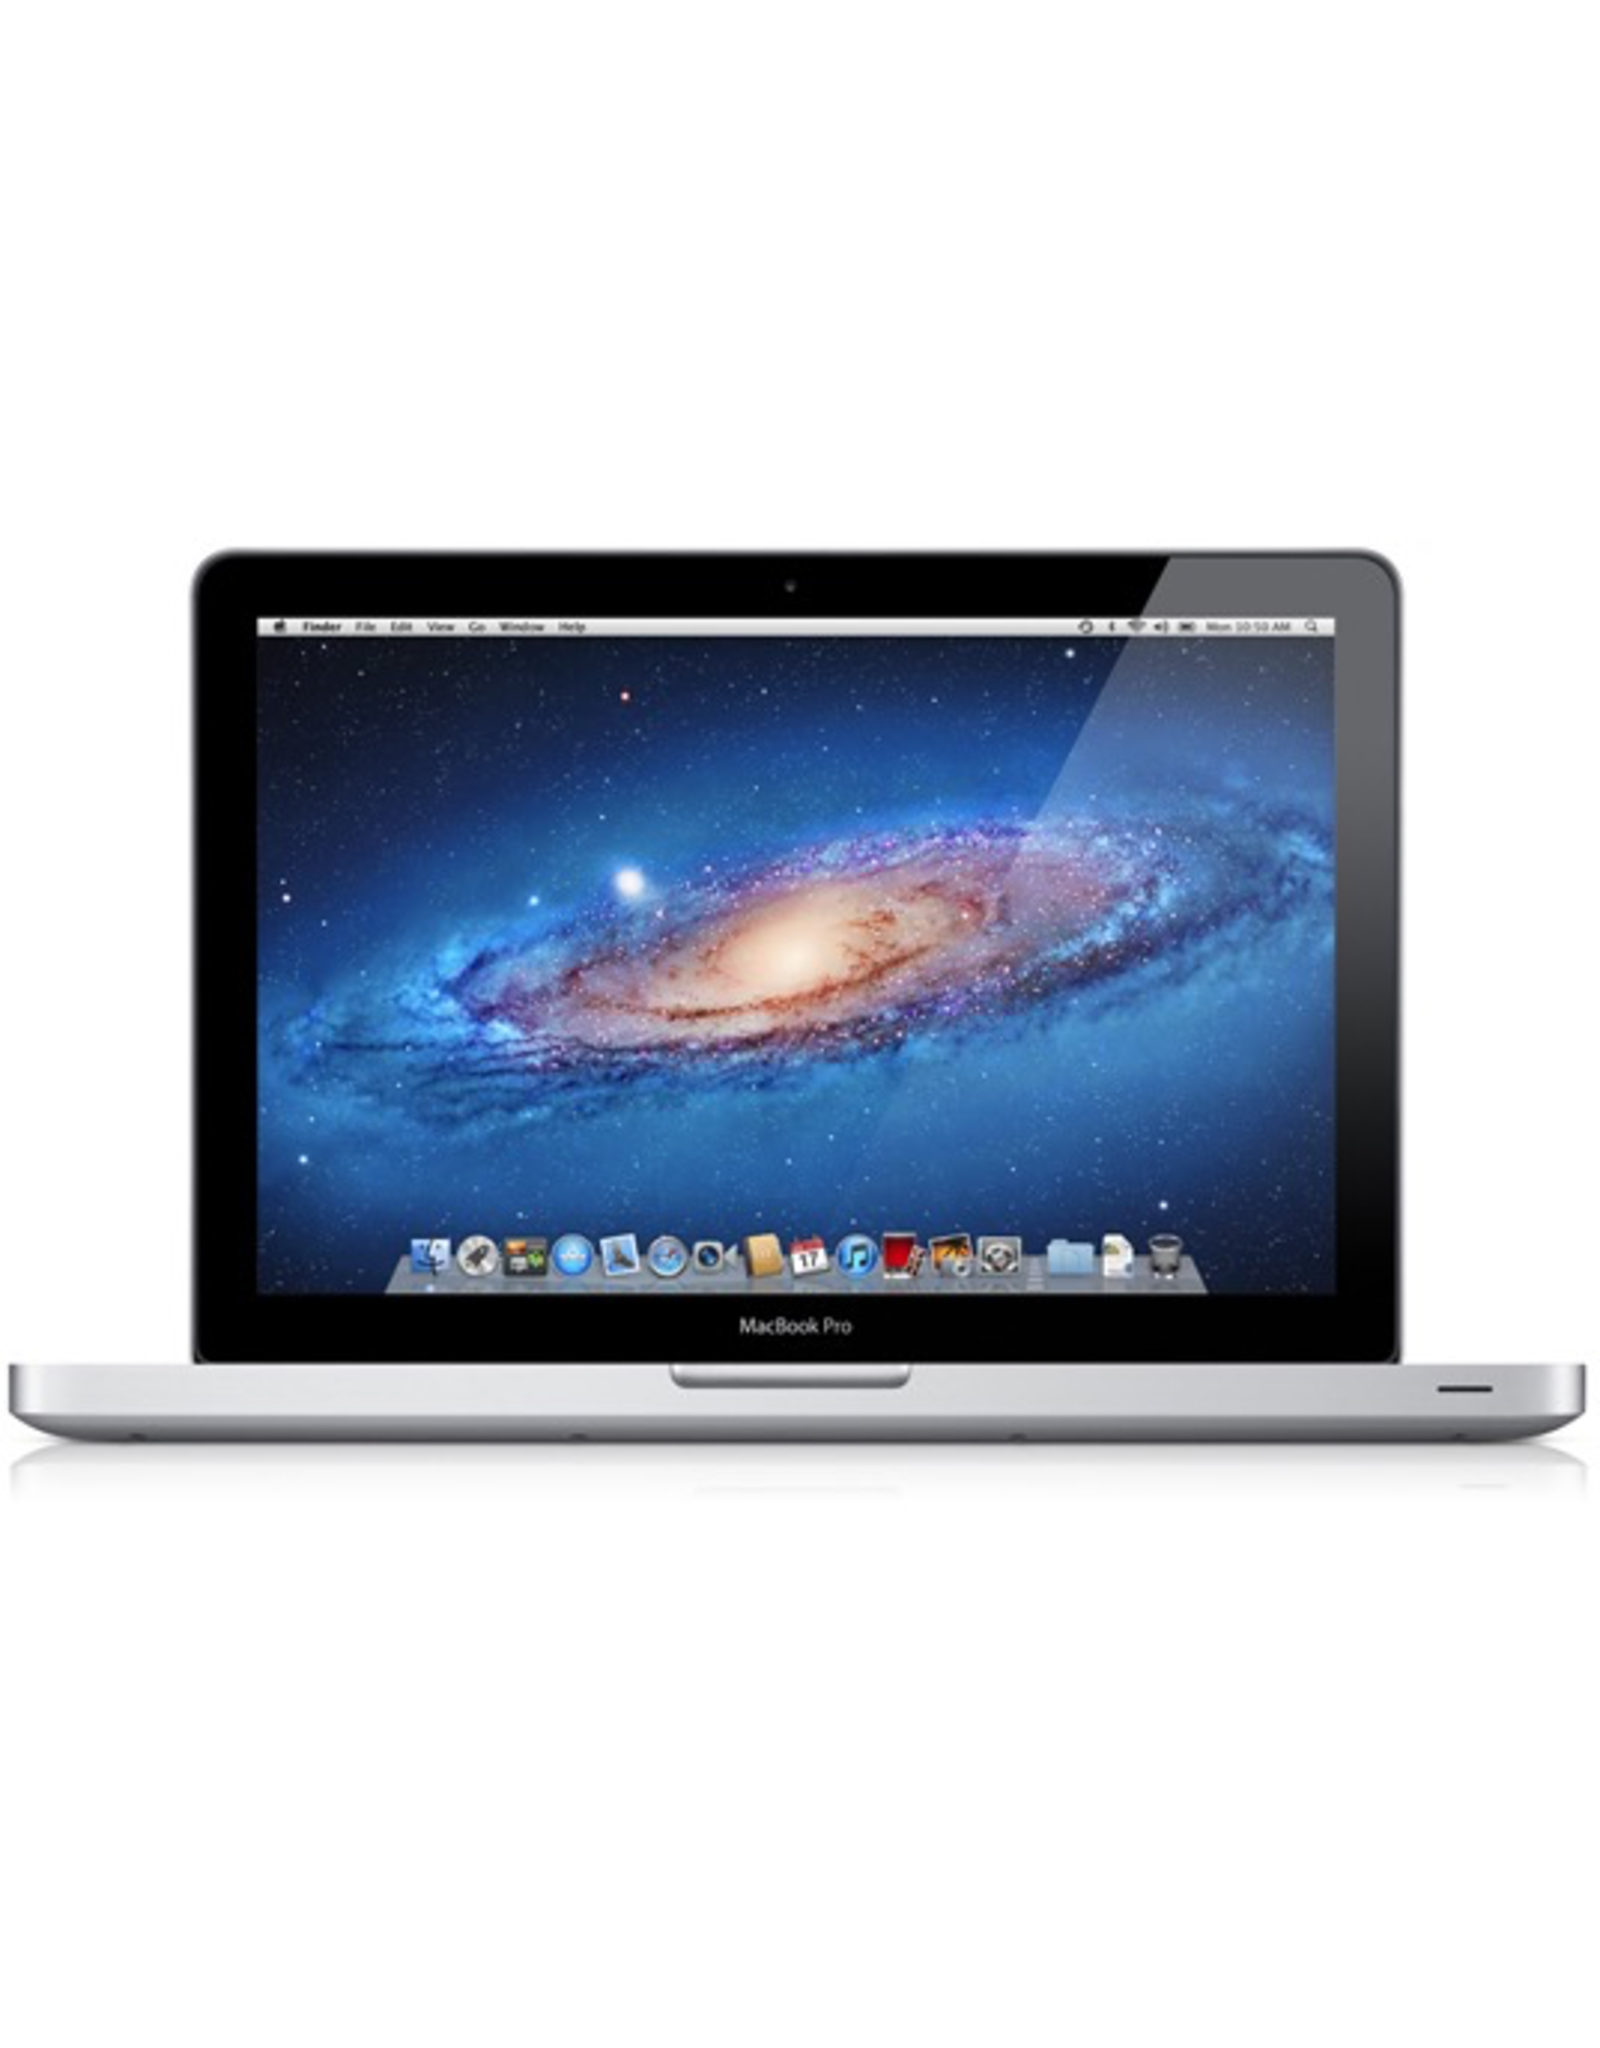 Apple PreOwned MacBook Pro (13-inch, Mid 2012) 2.5GHz Intel Core i5 - 30 Days Exchange